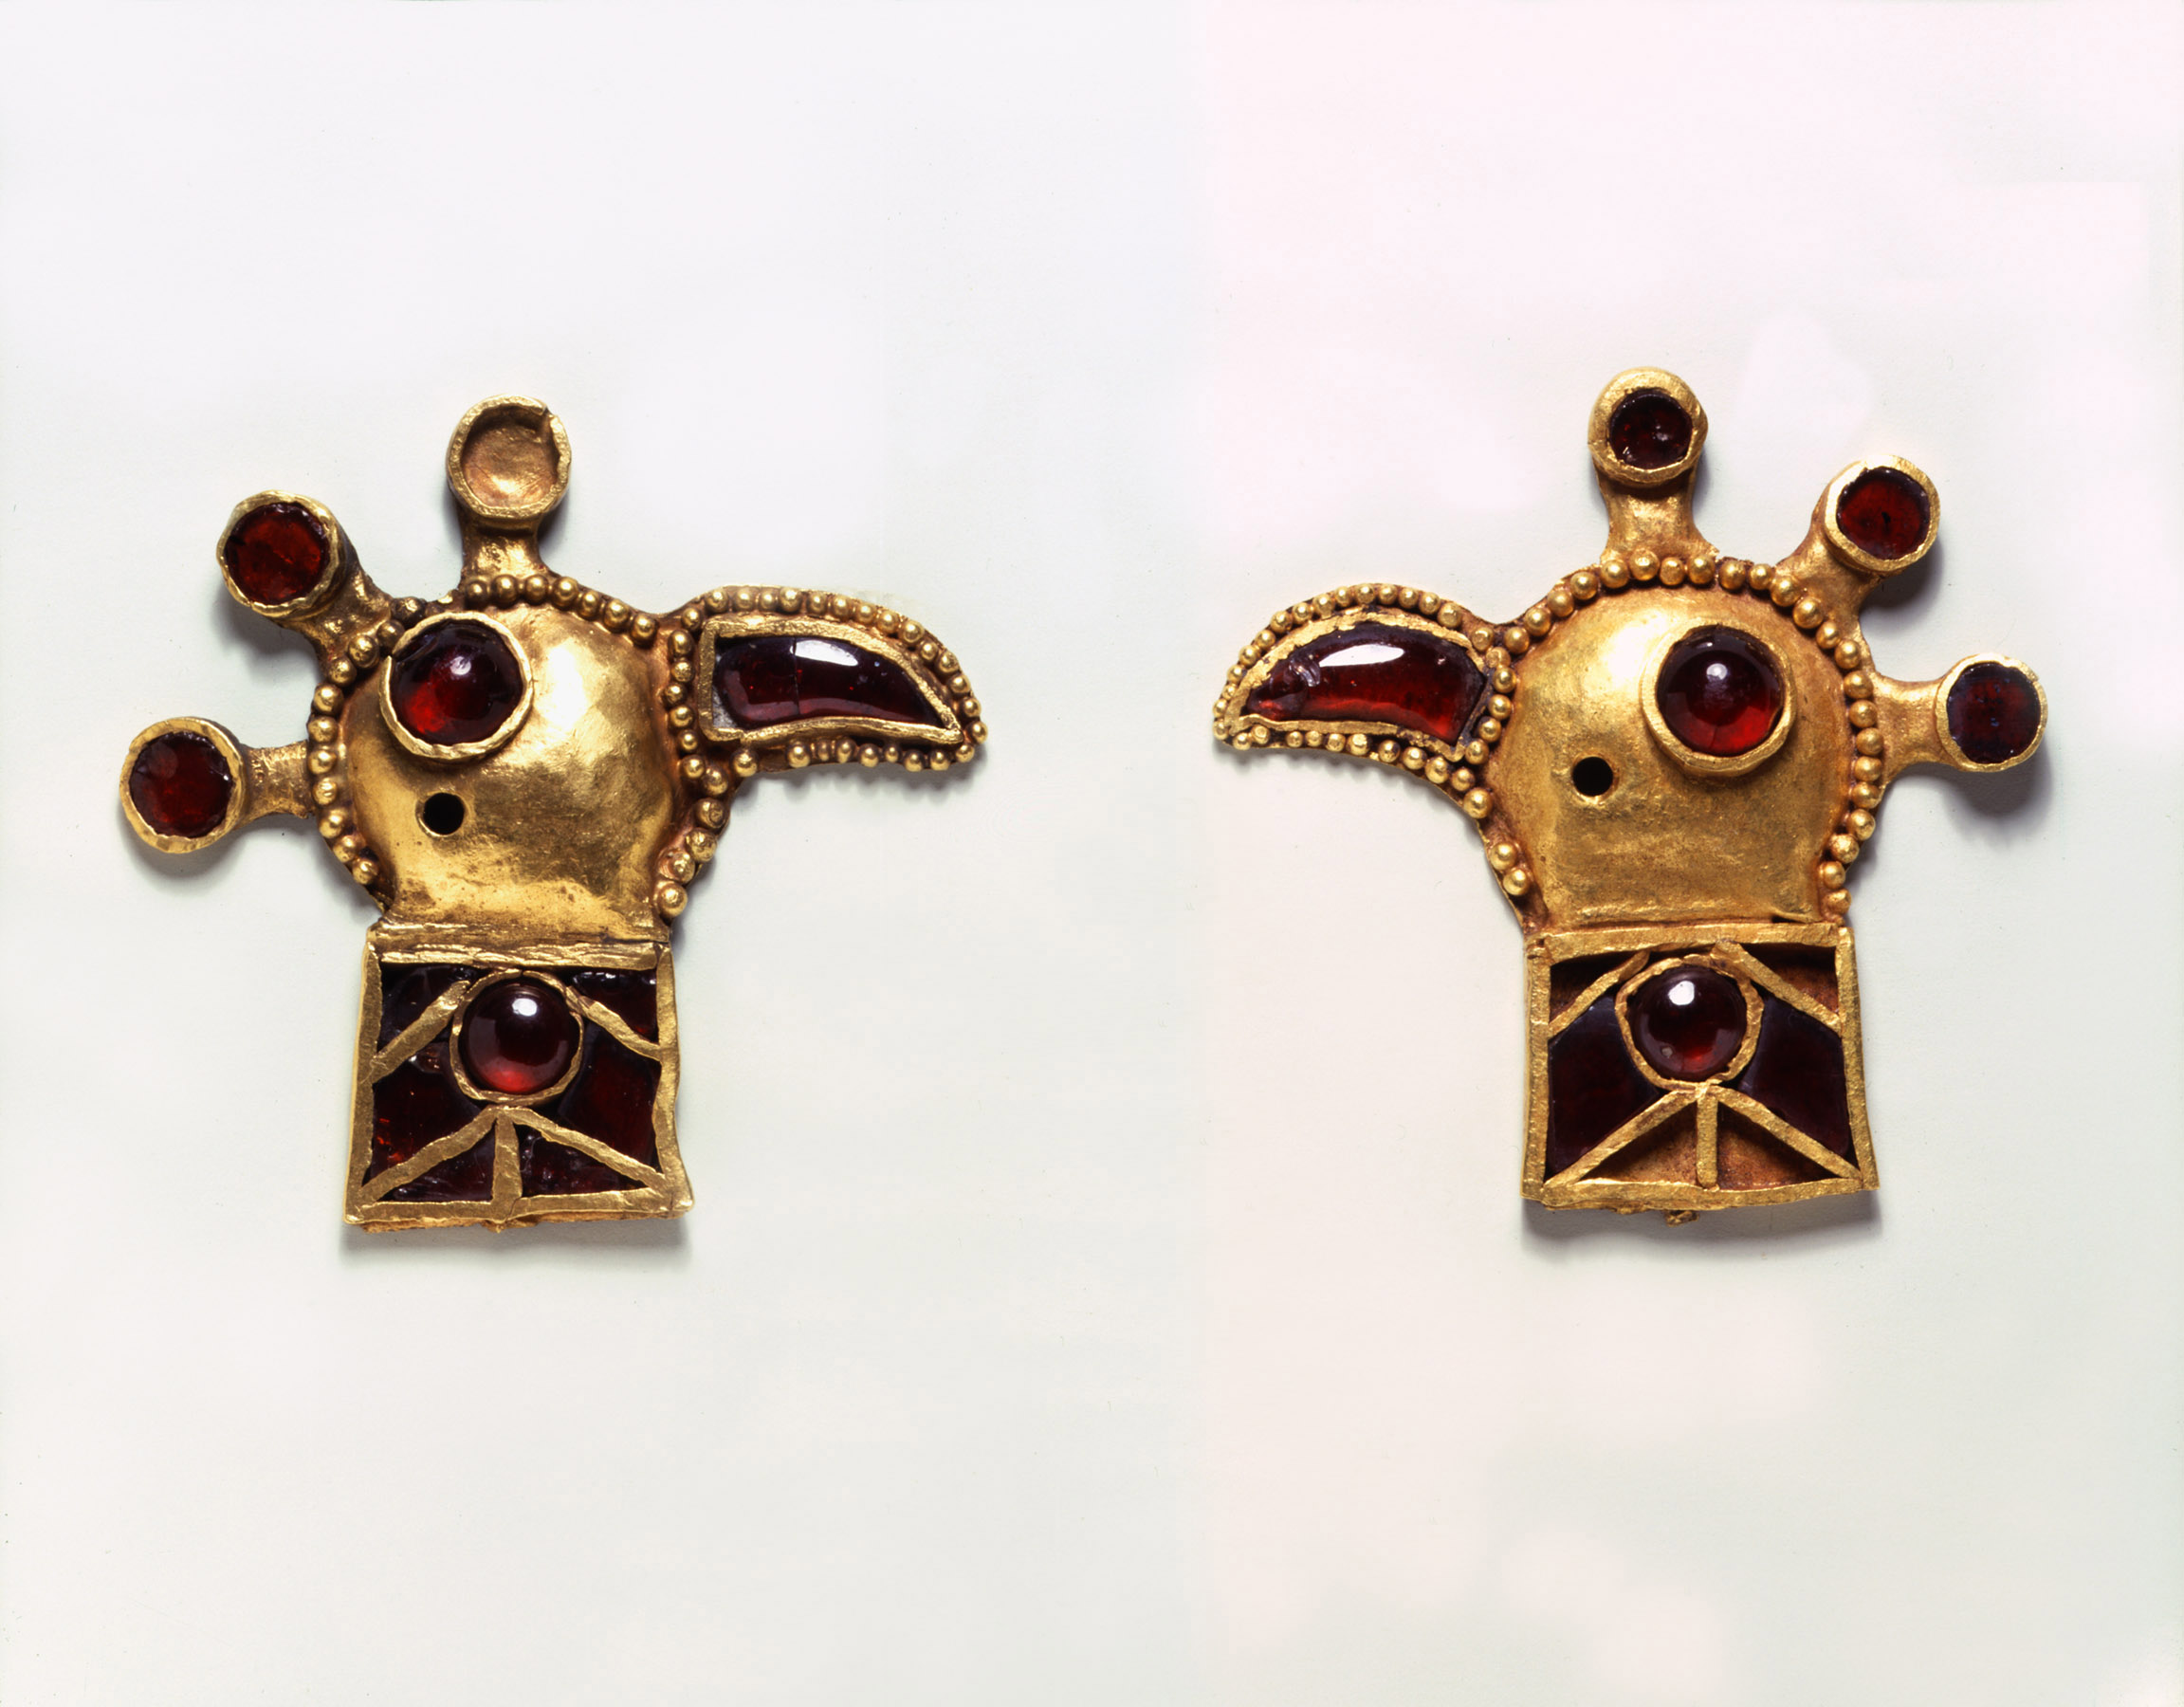 BZ.1936.27–28, Pair of Peacock-Head Appliques